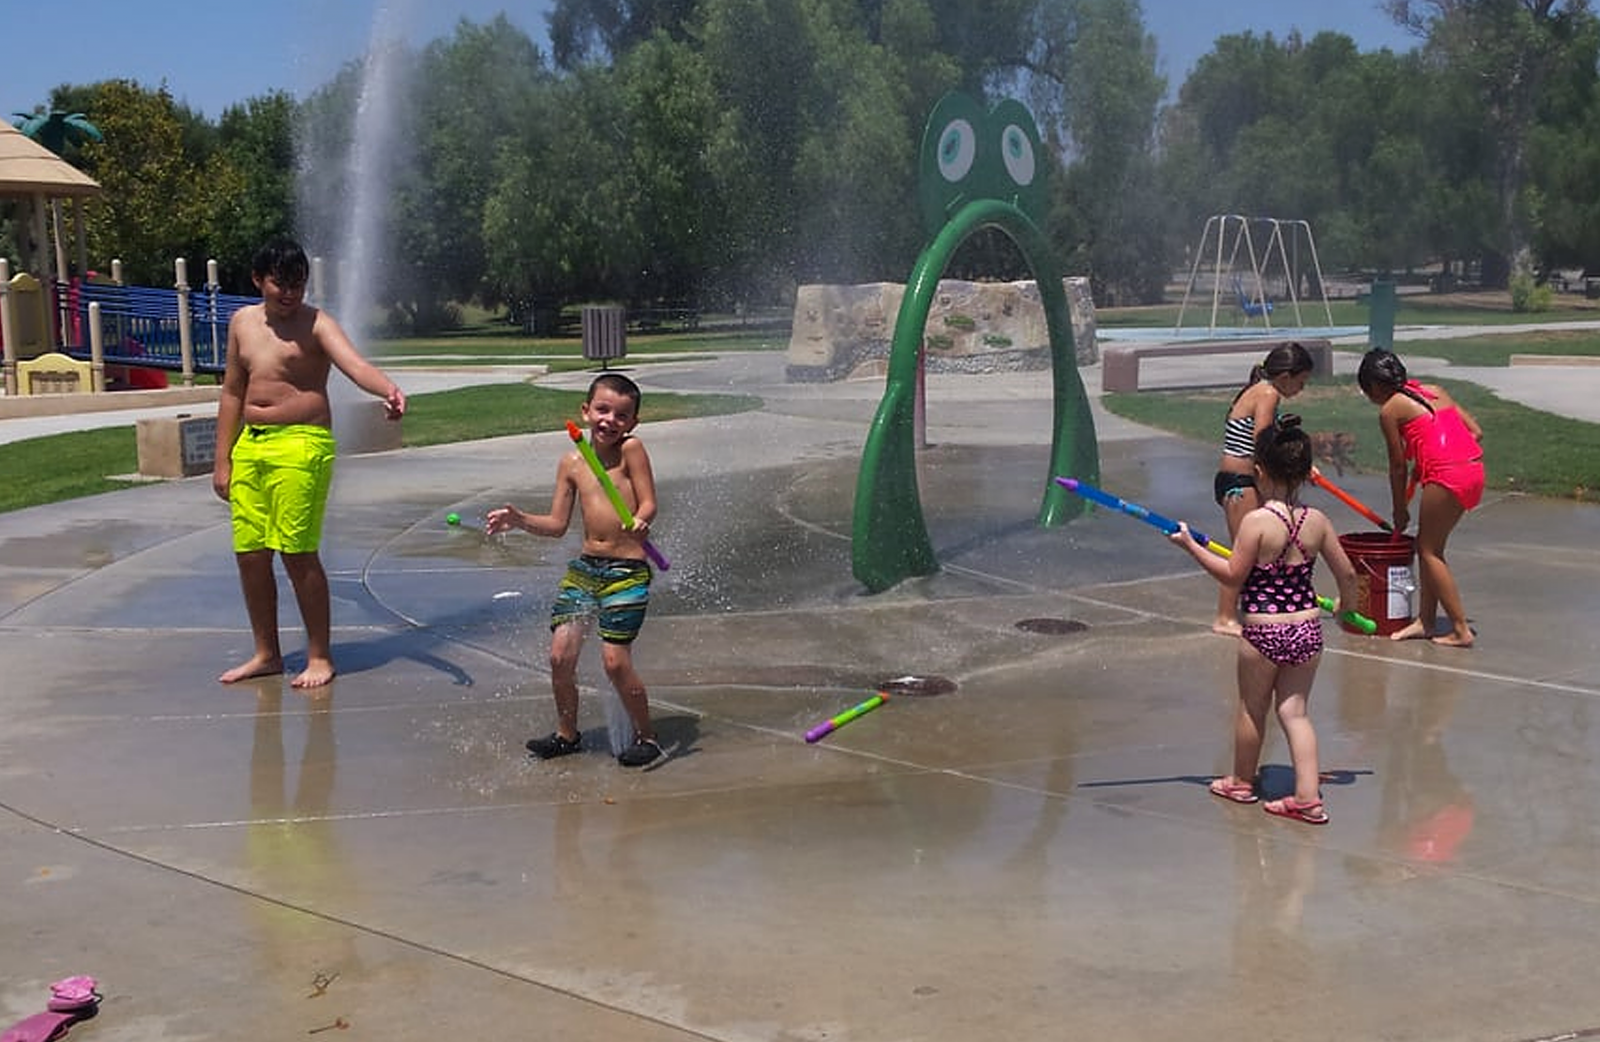 Children play at Prado splash pad.